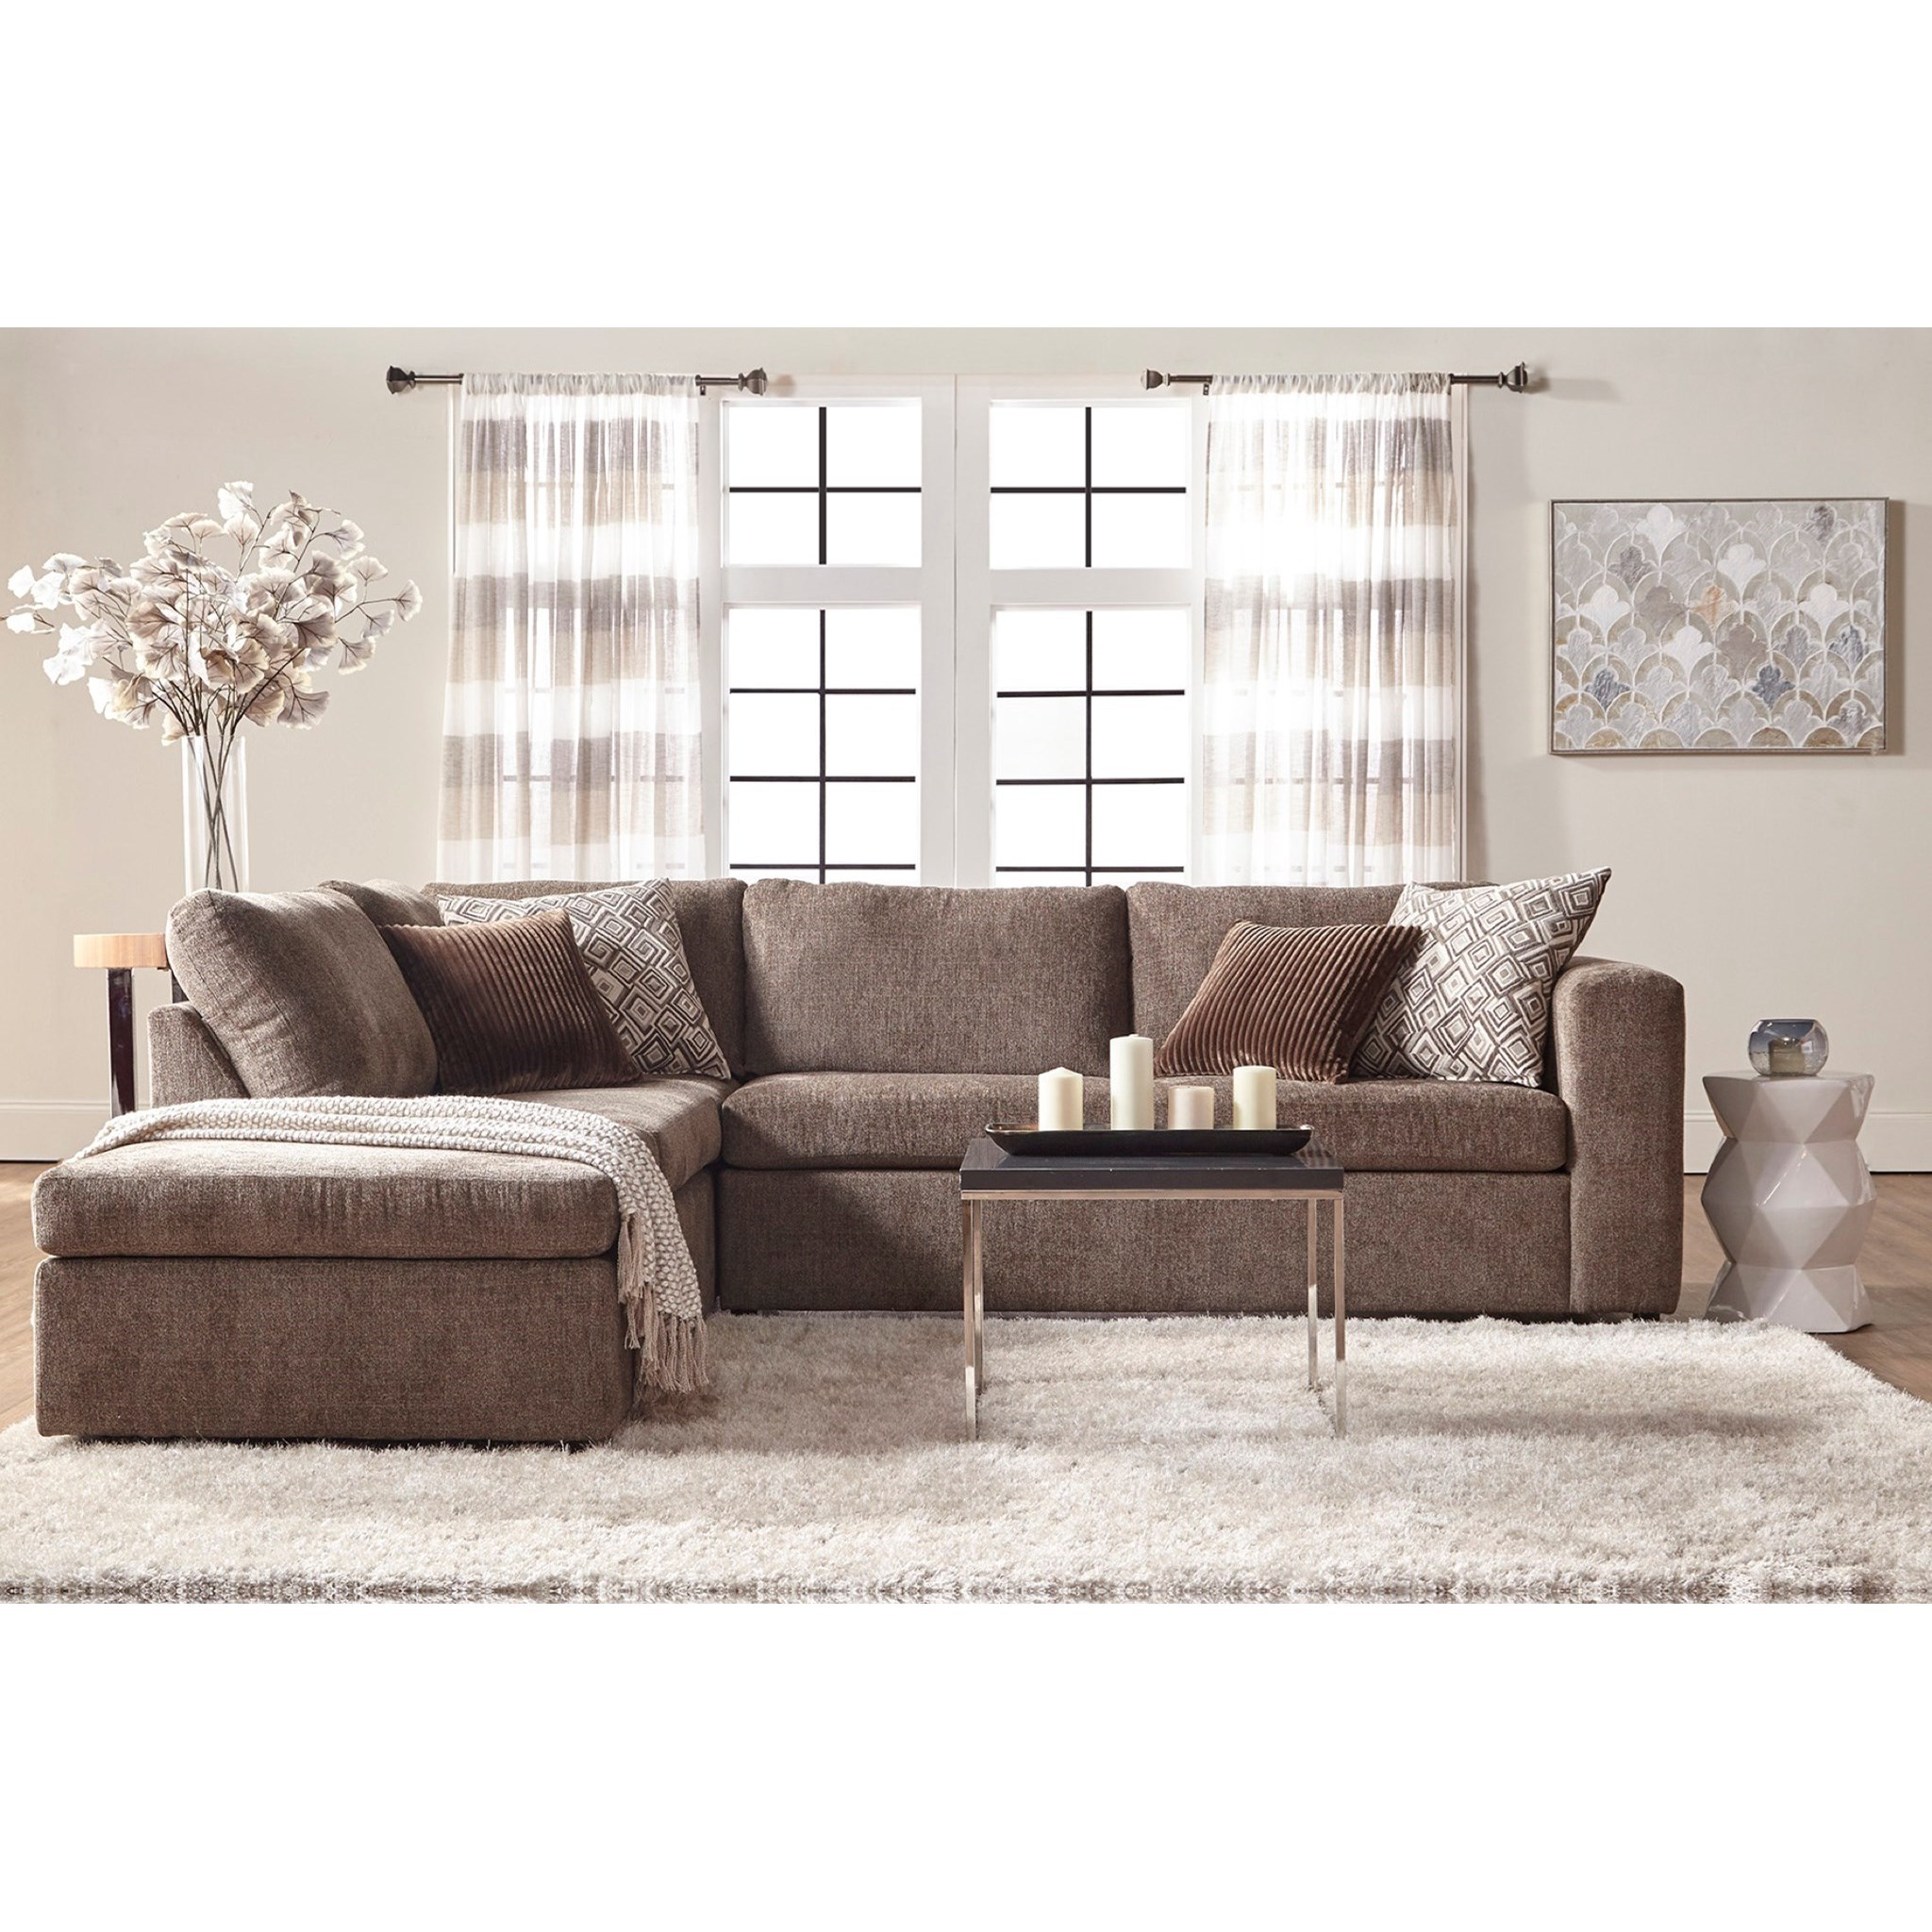 Serta Upholstery Angora Casual Contemporary Sectional Sofa With Chaise Rotmans Sectional Sofas